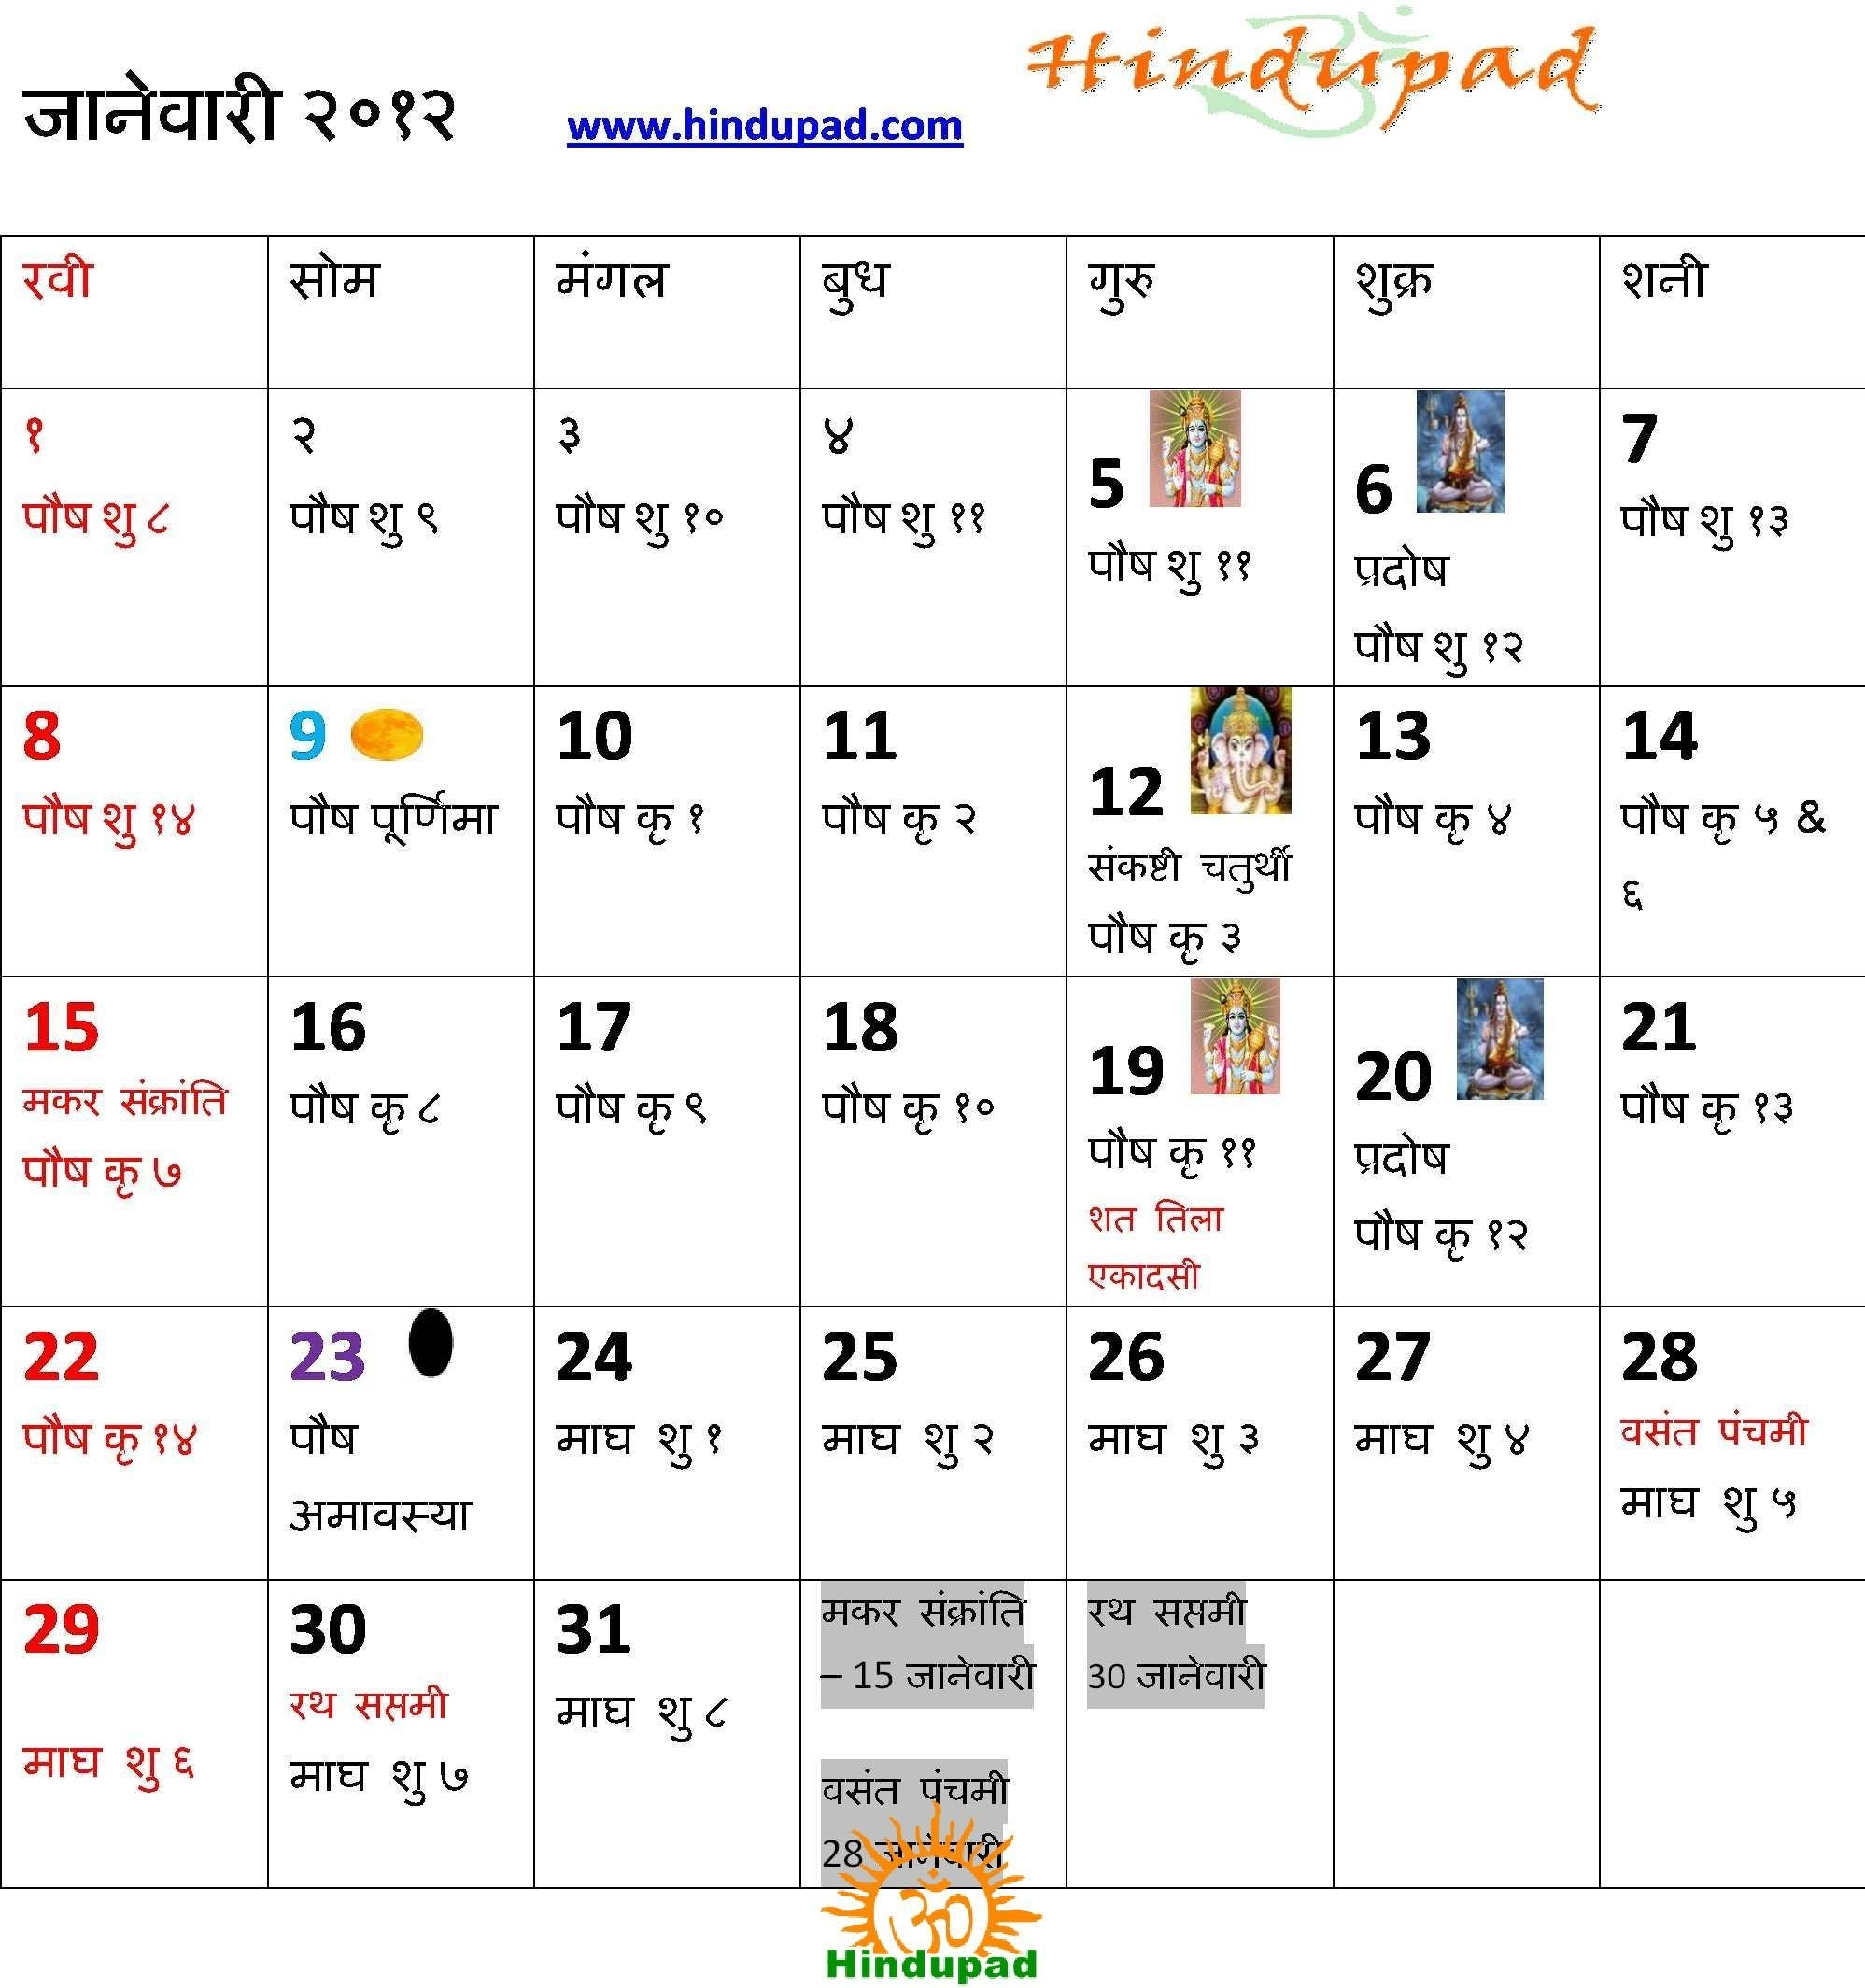 Marathi Calendar 2012 With Tithi Pdf Download, Printable Marathi intended for Hindu Calendar With Tithi 2012 March